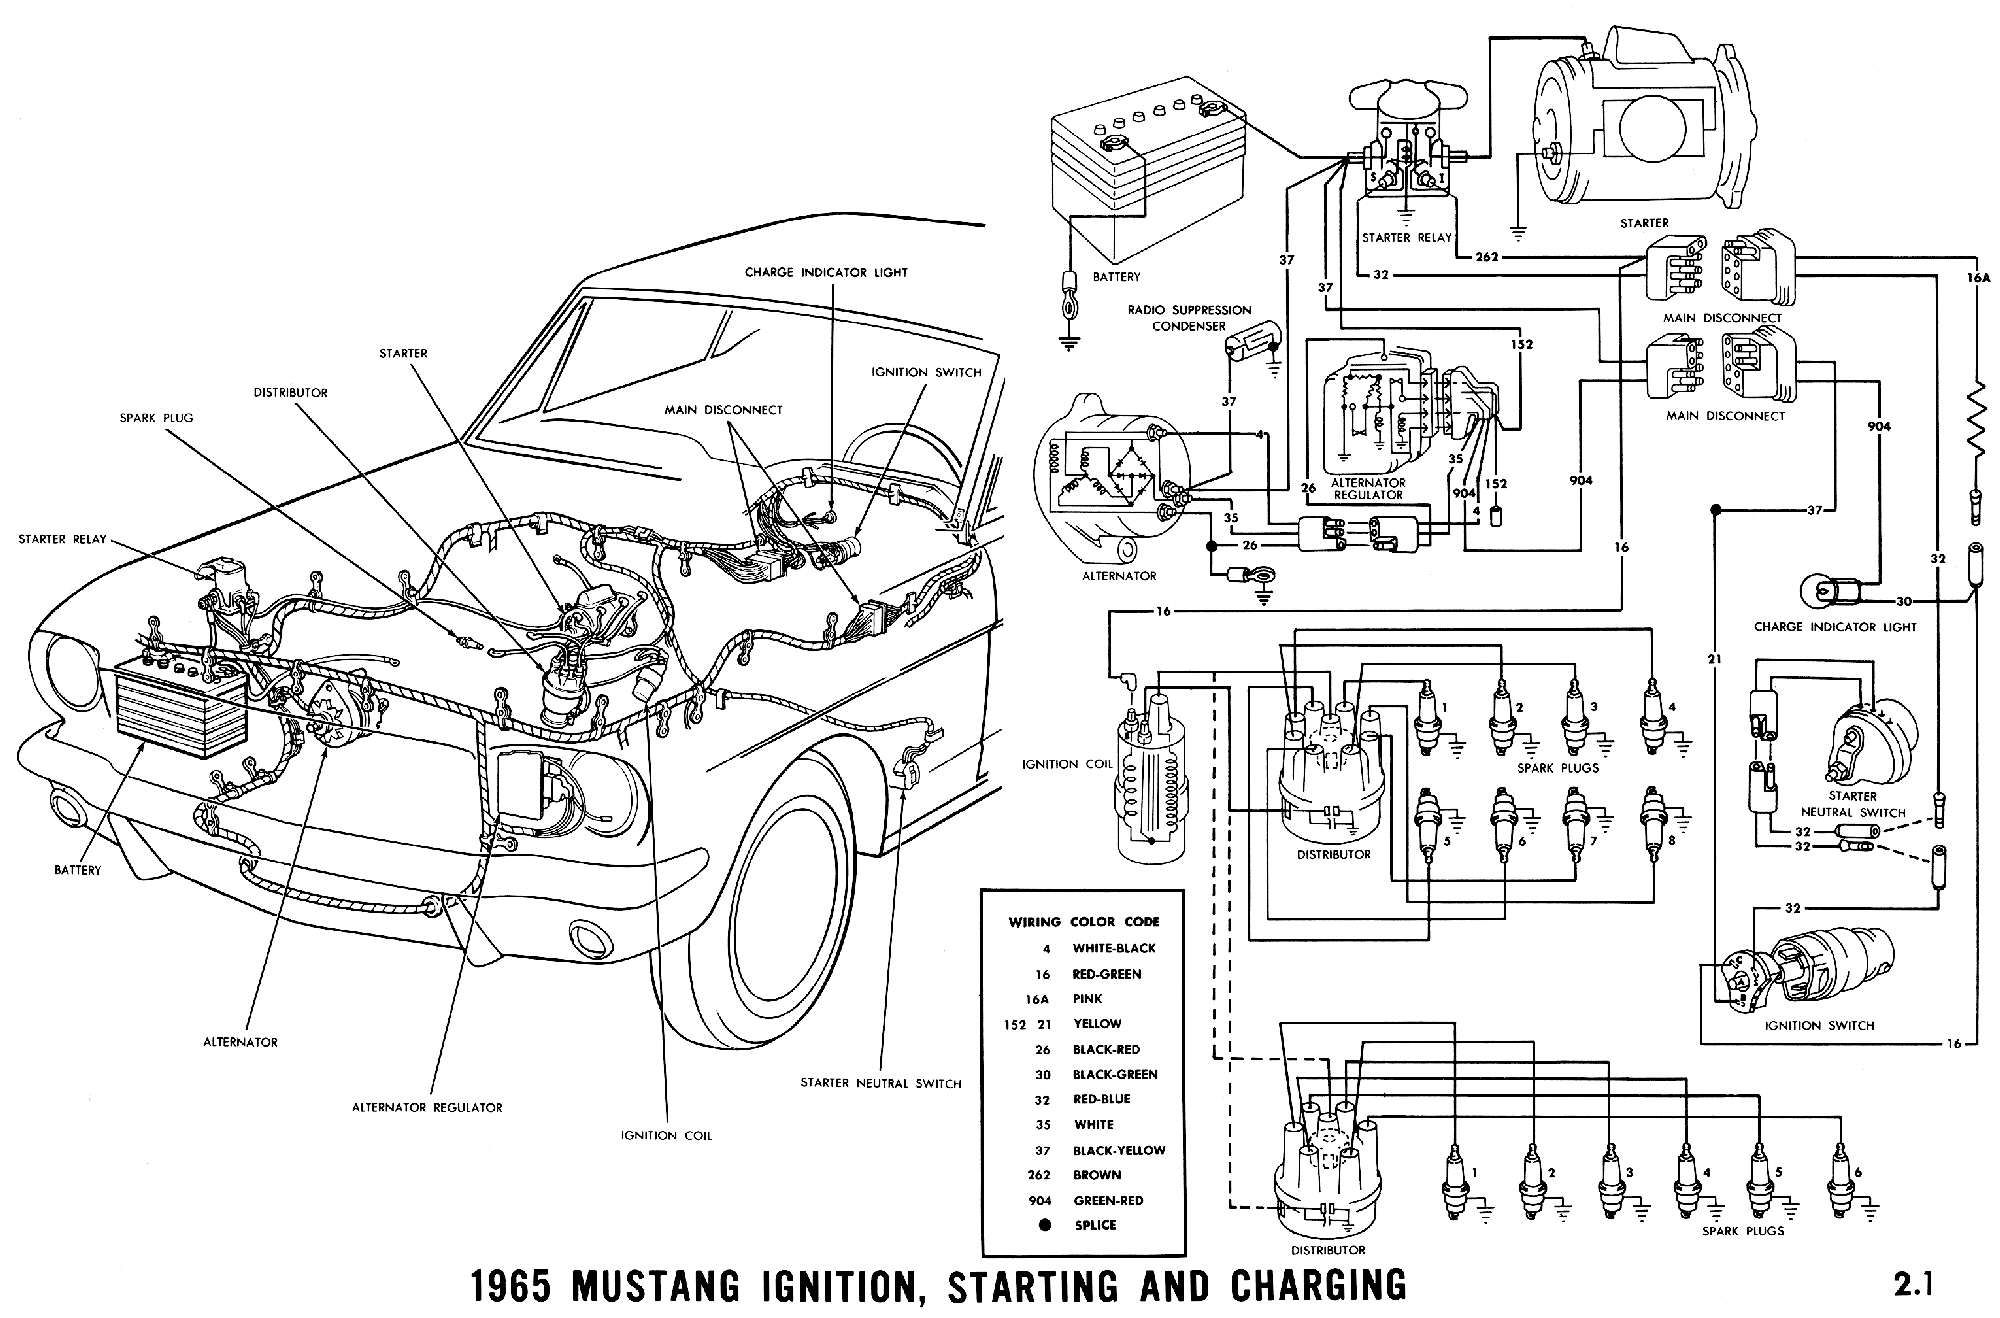 1965 mustang wiring diagrams mustang 1965 mustang mustang classic mustang. Black Bedroom Furniture Sets. Home Design Ideas